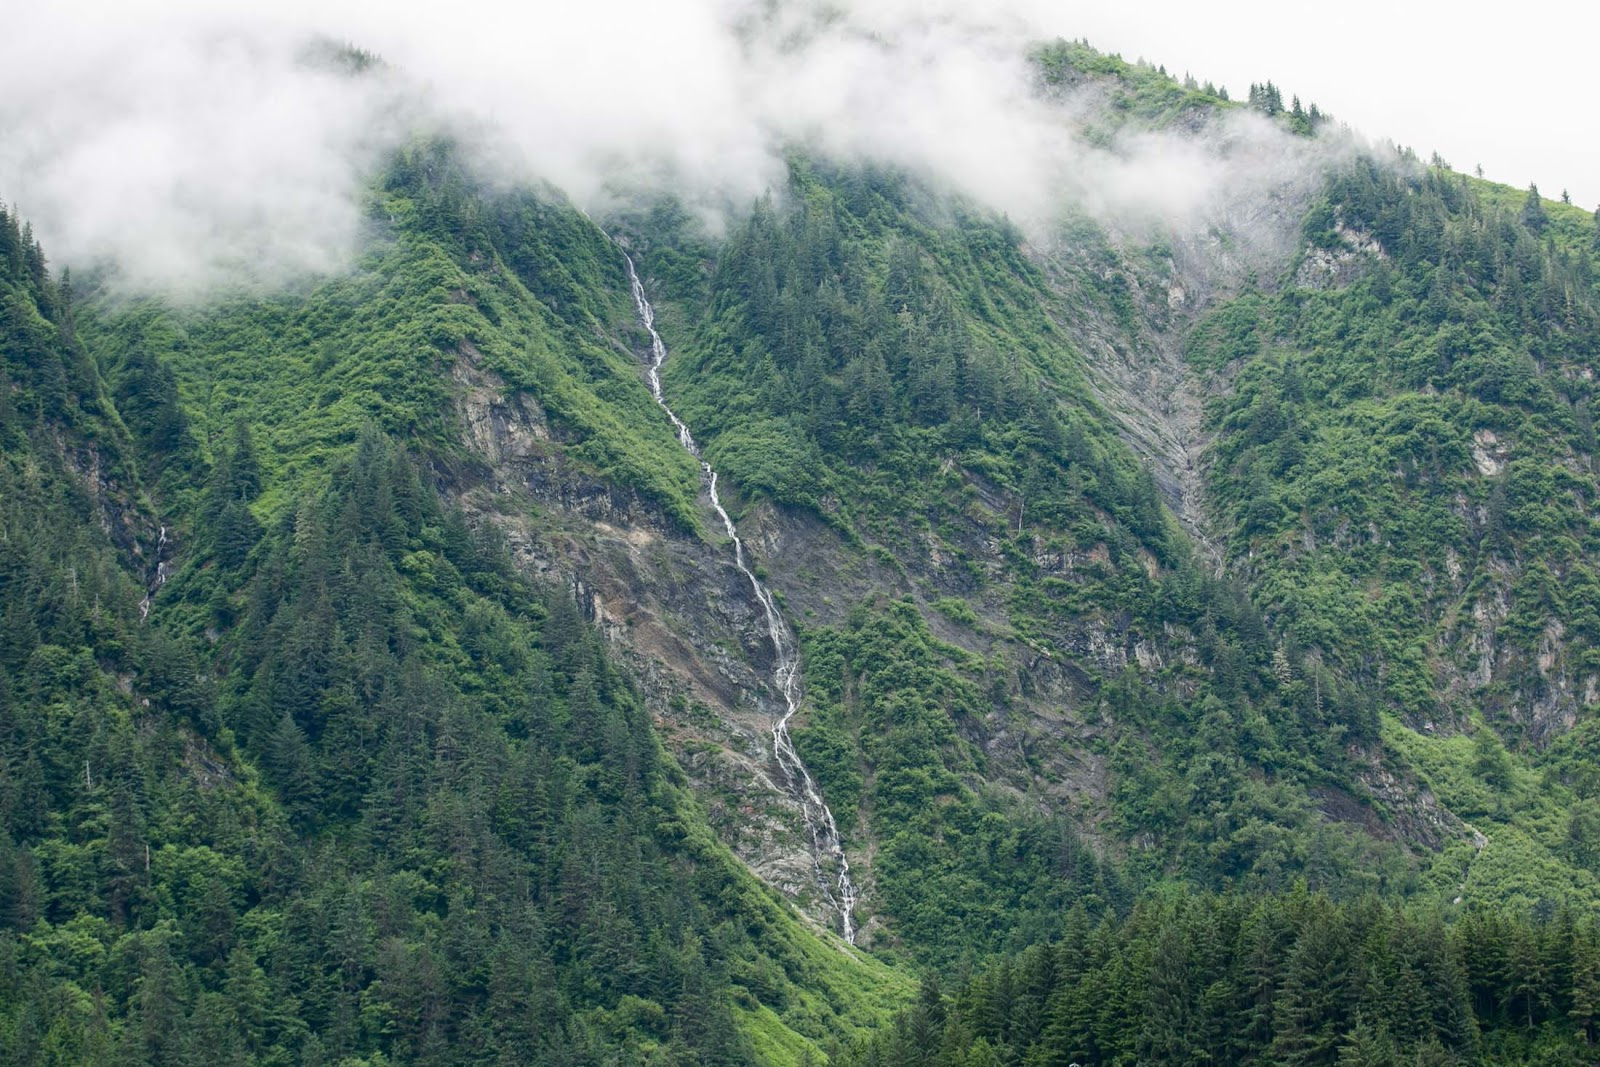 Waterfall snakes down mountain in Juneau